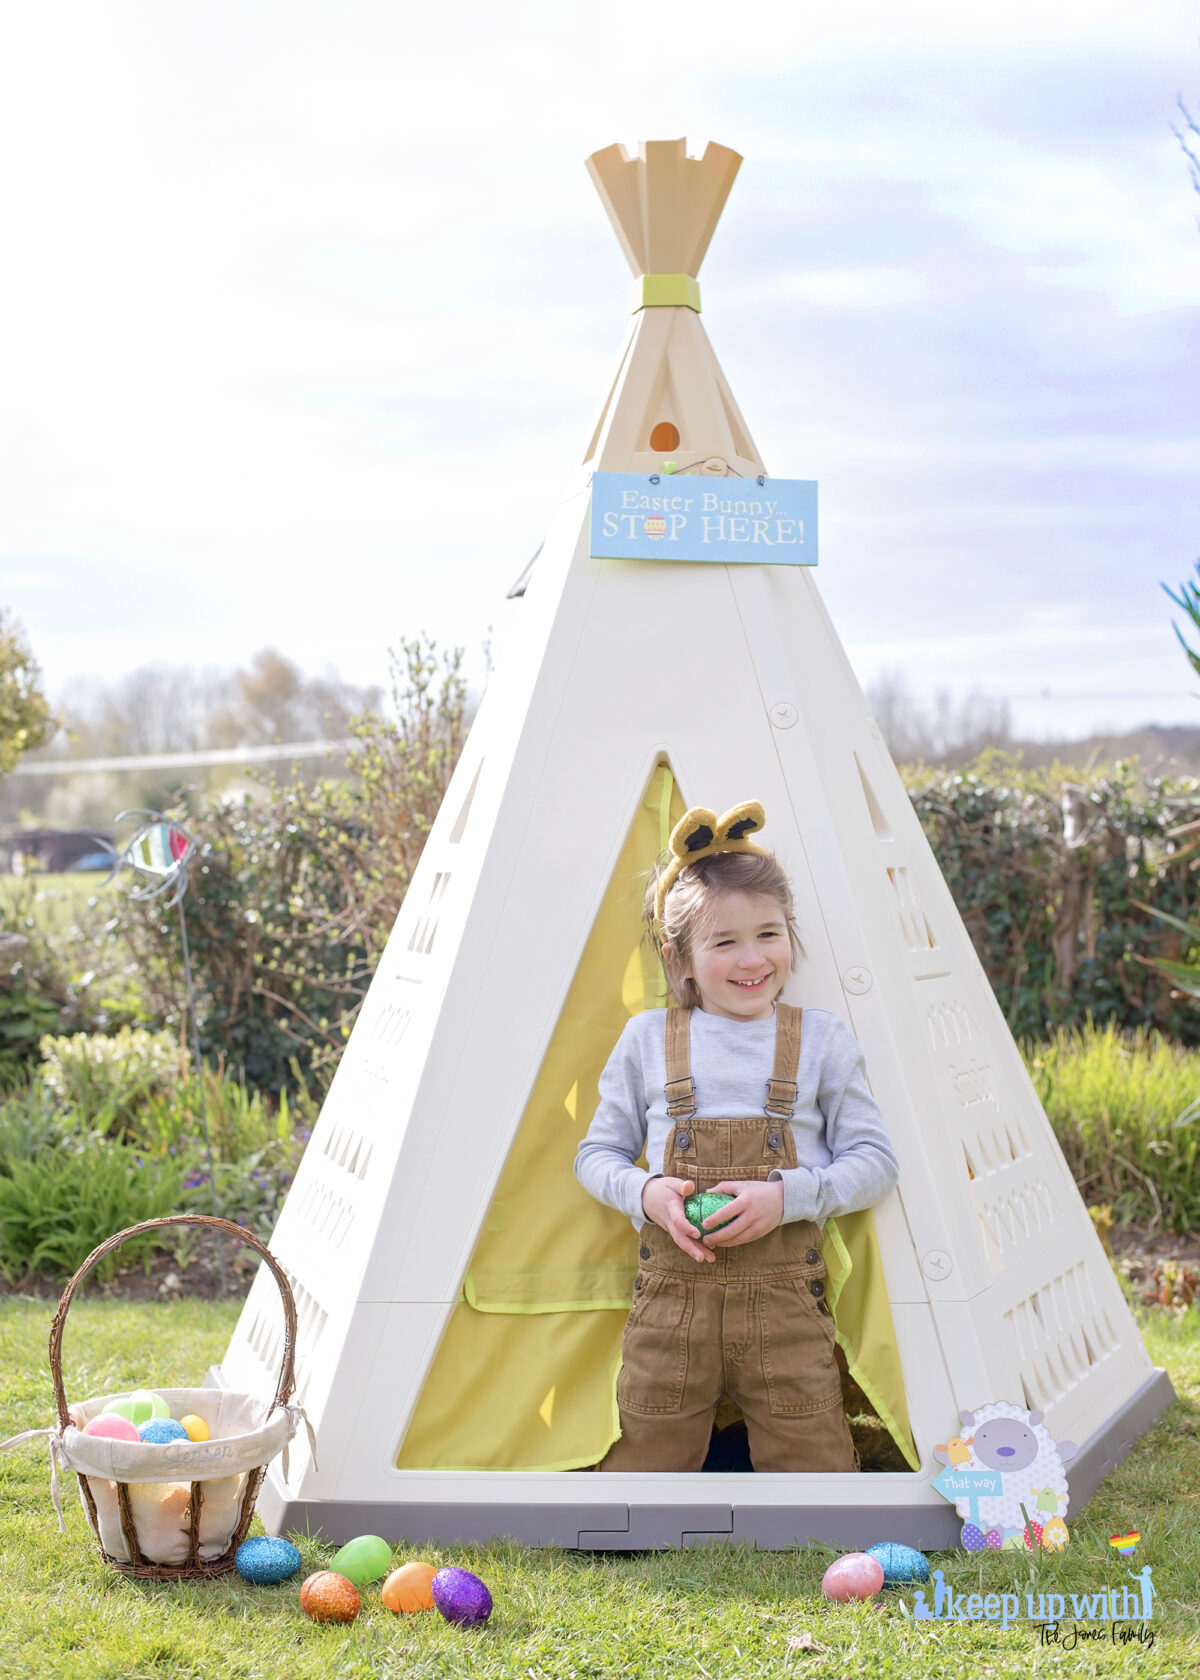 Image shows the new SmobyUK Teepee, available on Amazon, in the garden. The teepee is cream, white and green with a triangle pattern on the sides.  There is a fabric door which is lime green and a little boy aged 6 is stood in the doorway, dressed in light tan dungarees and a pale blue top, and wearing grey and pink bunny ears for easter.   He is laughing.  There is an easter baskets filled with coloured easter eggs which have spilled onto the floor.  The teepee is decorated with a sign which reads Easter Bunny Stop here!